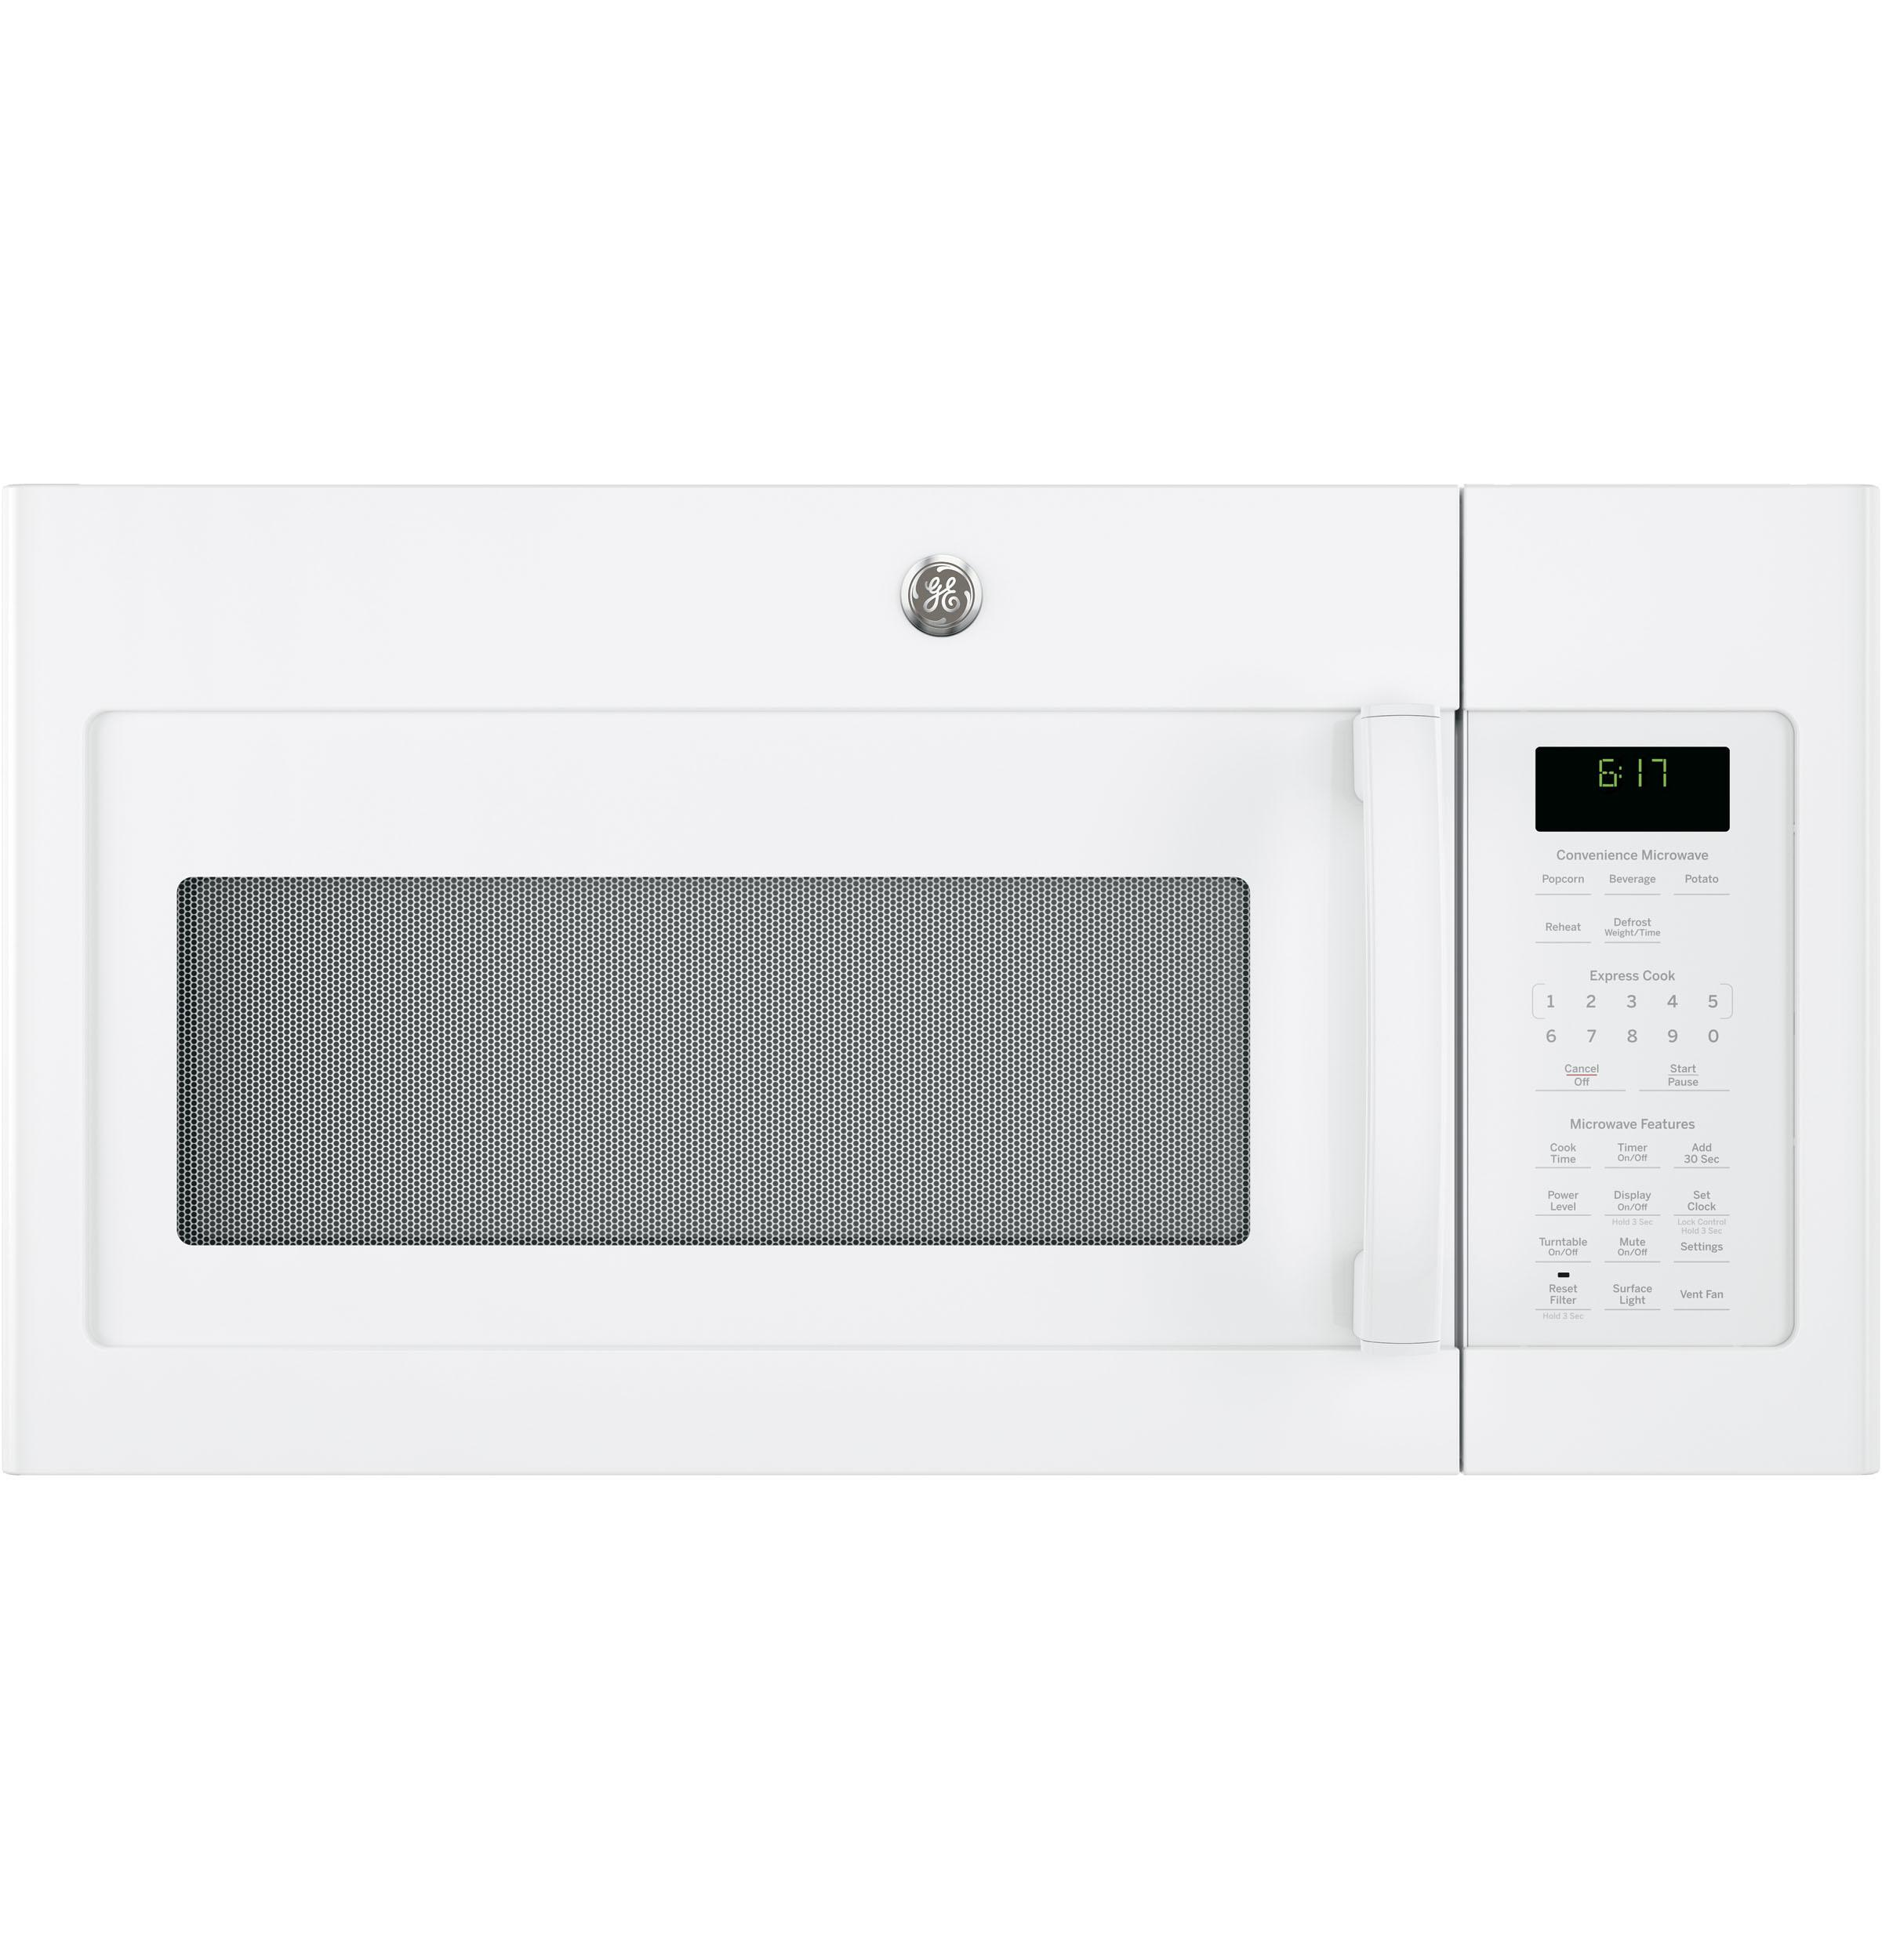 GE(R) 1.7 Cu. Ft. Over-the-Range Microwave Oven  WHITE